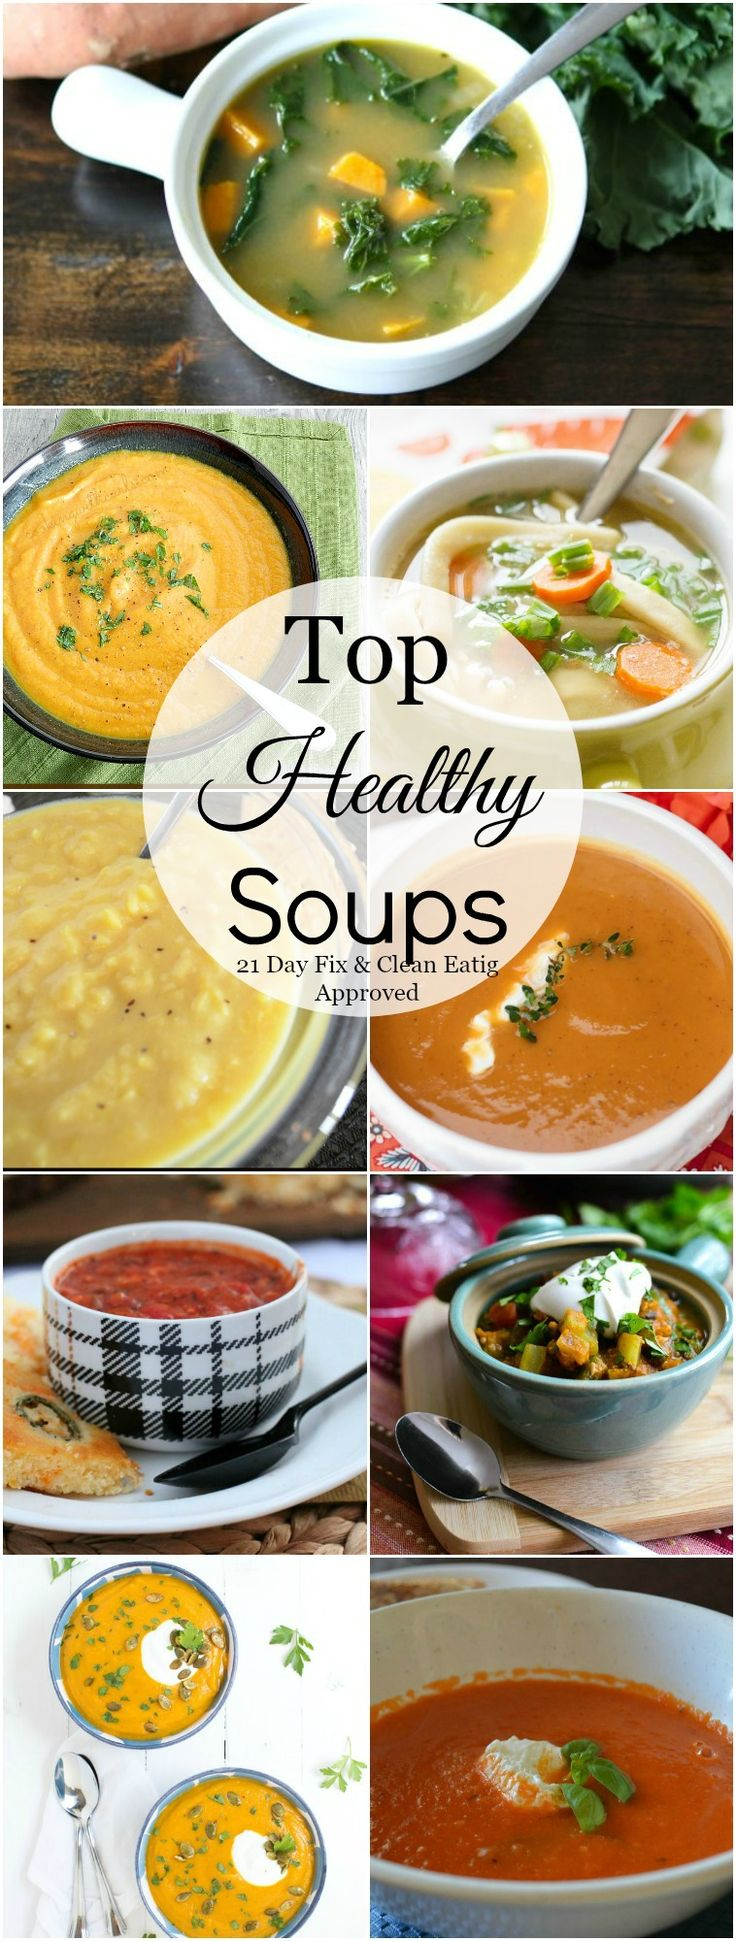 Top Healthy Soups that are 21 Day Fix & Clean Eating Approved